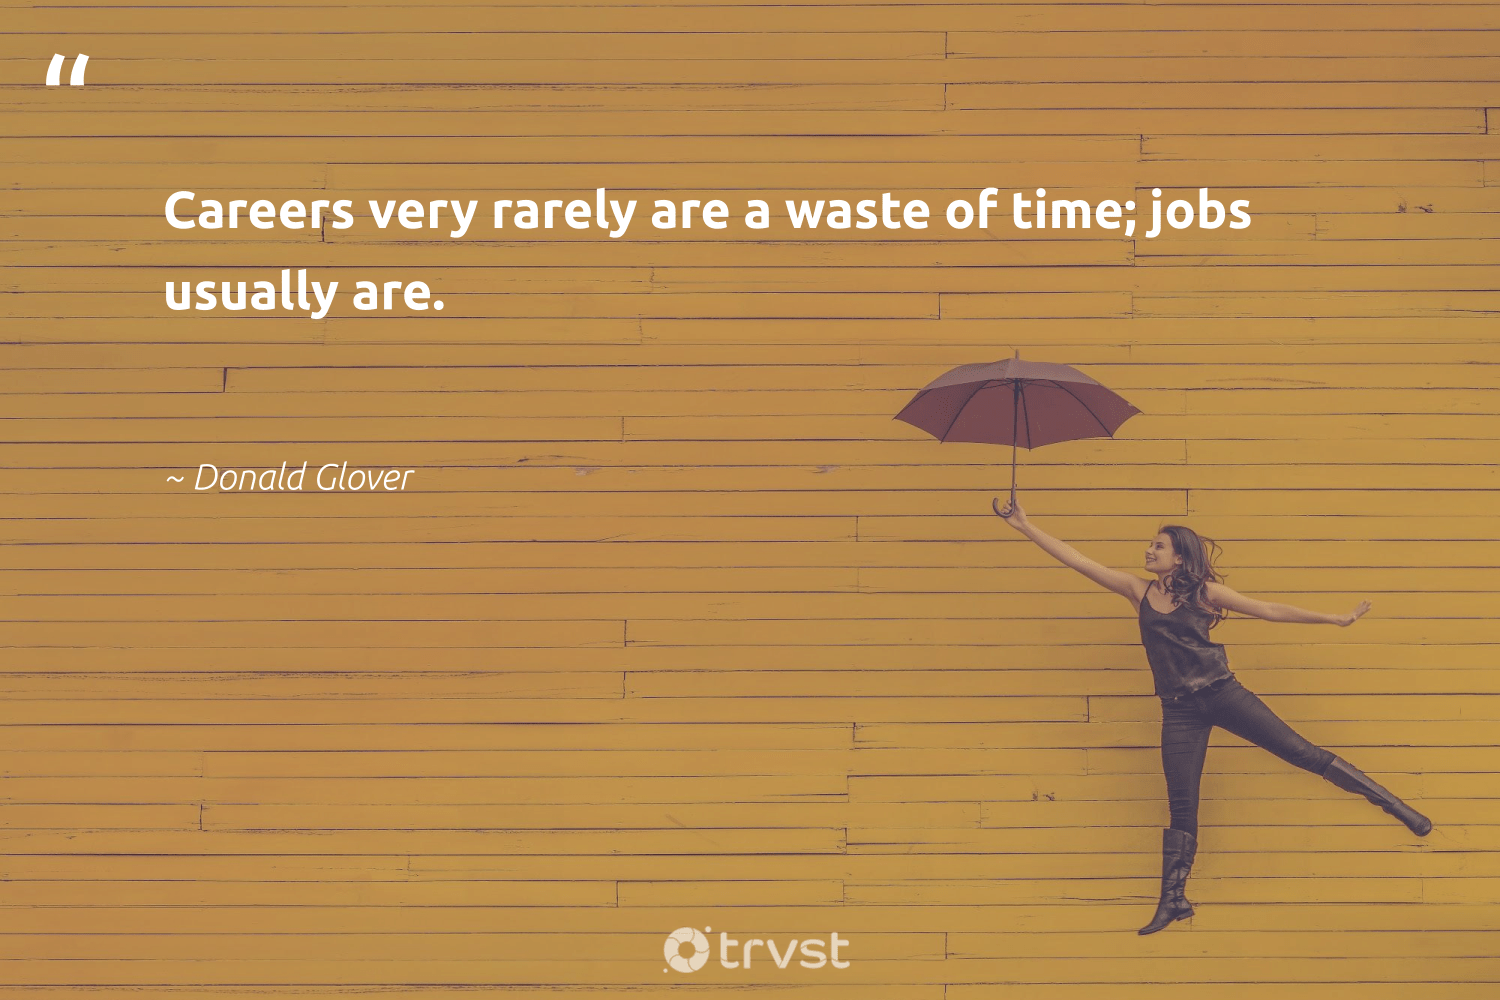 """Careers very rarely are a waste of time; jobs usually are.""  - Donald Glover #trvst #quotes #waste #begreat #takeaction #softskills #bethechange #nevergiveup #socialchange #futureofwork #dotherightthing #planetearthfirst"